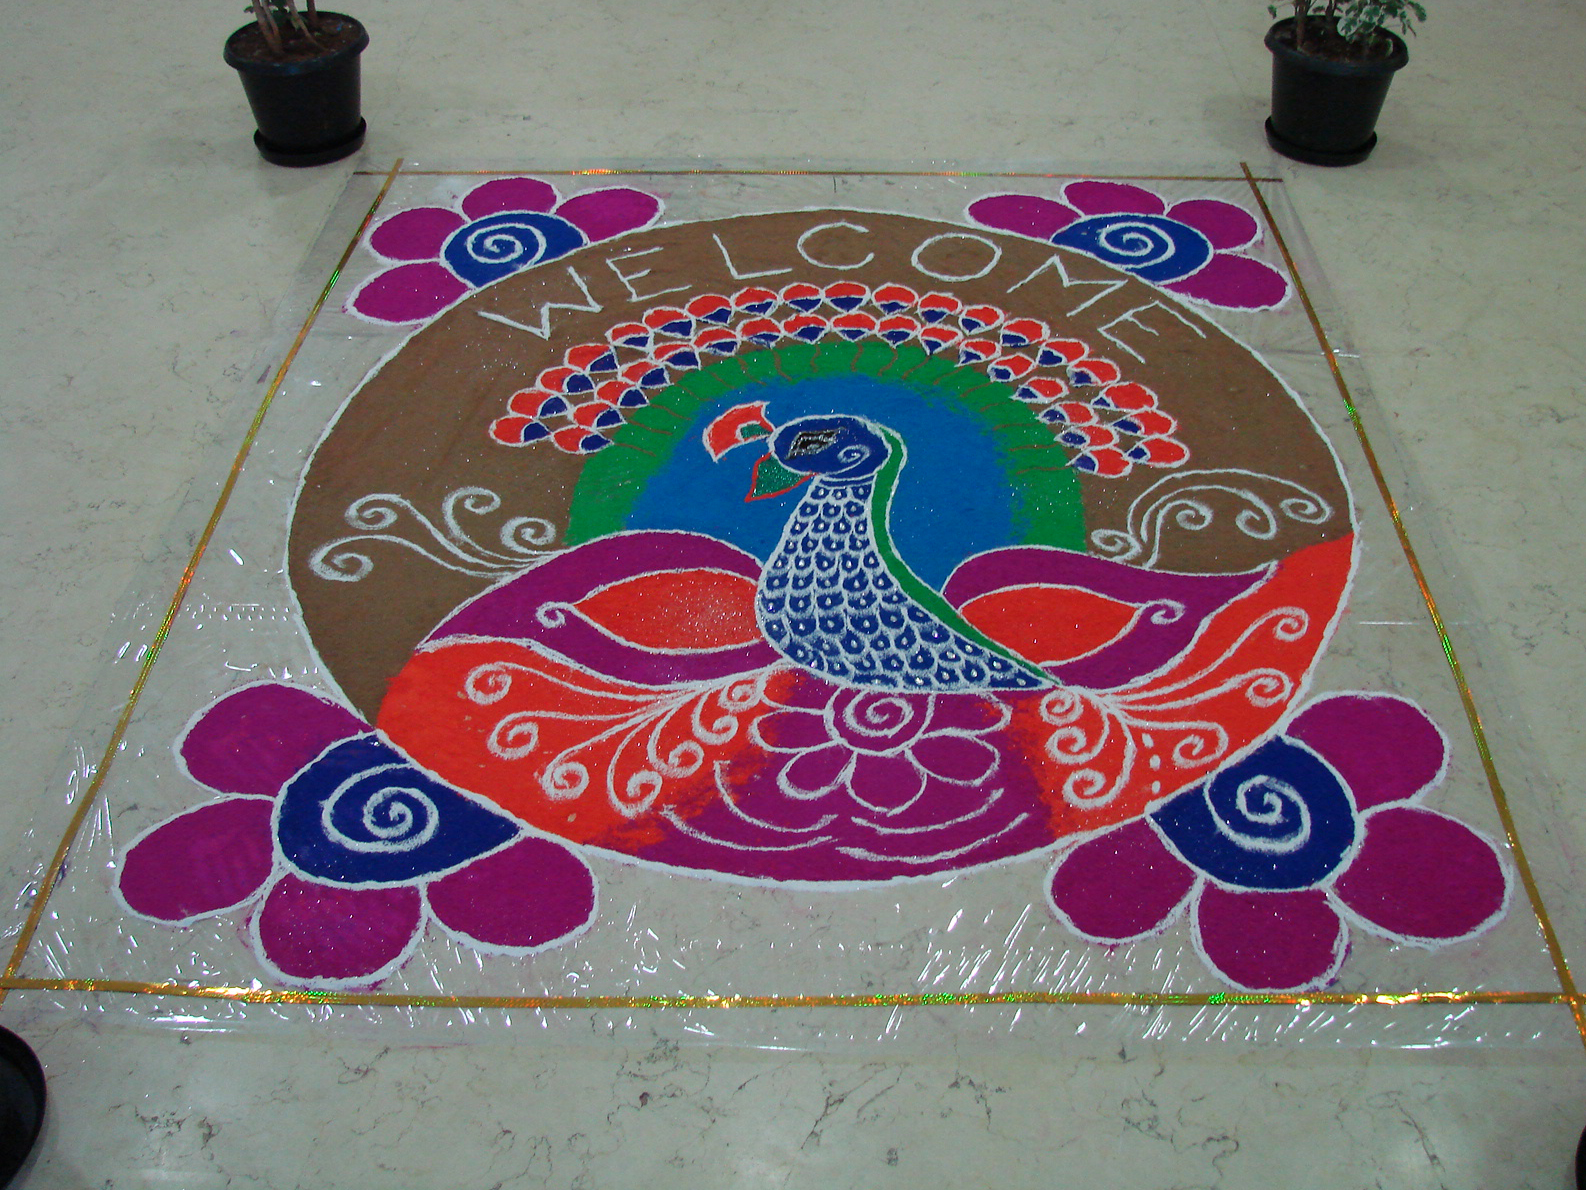 Rangoli Designs For Competition With Concepts A rangoli with mixed colors at